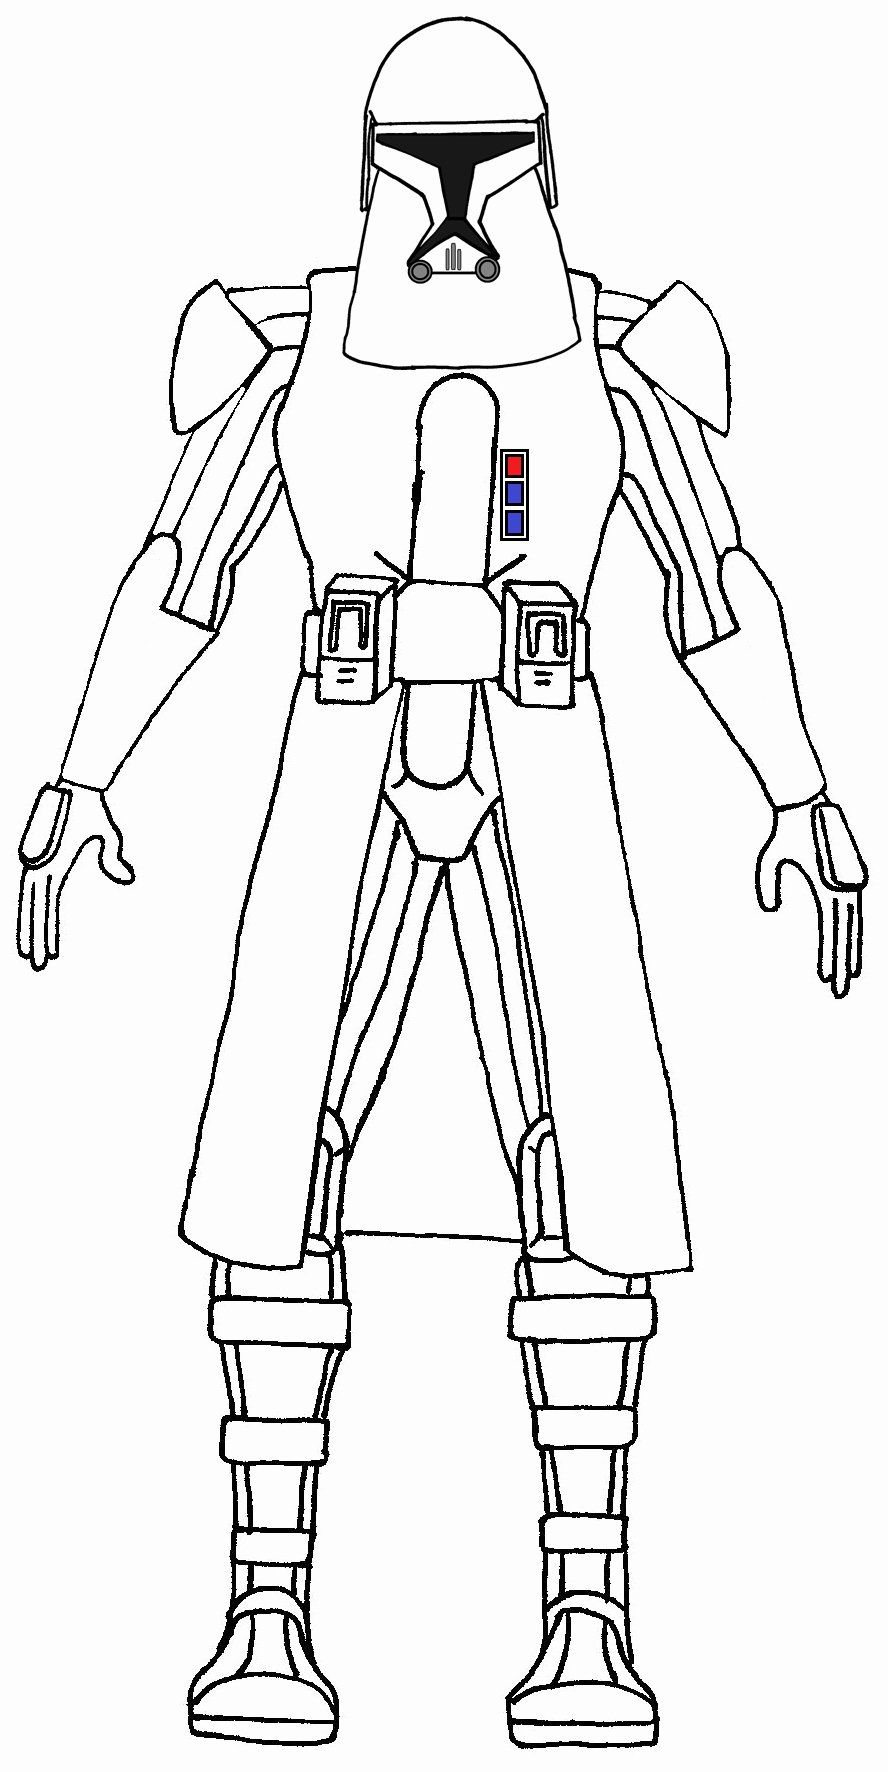 Clone Trooper Coloring Page Luxury Clone Troopers Free Coloring Pages Star Wars Clone Wars Free Coloring Pages Fish Coloring Page